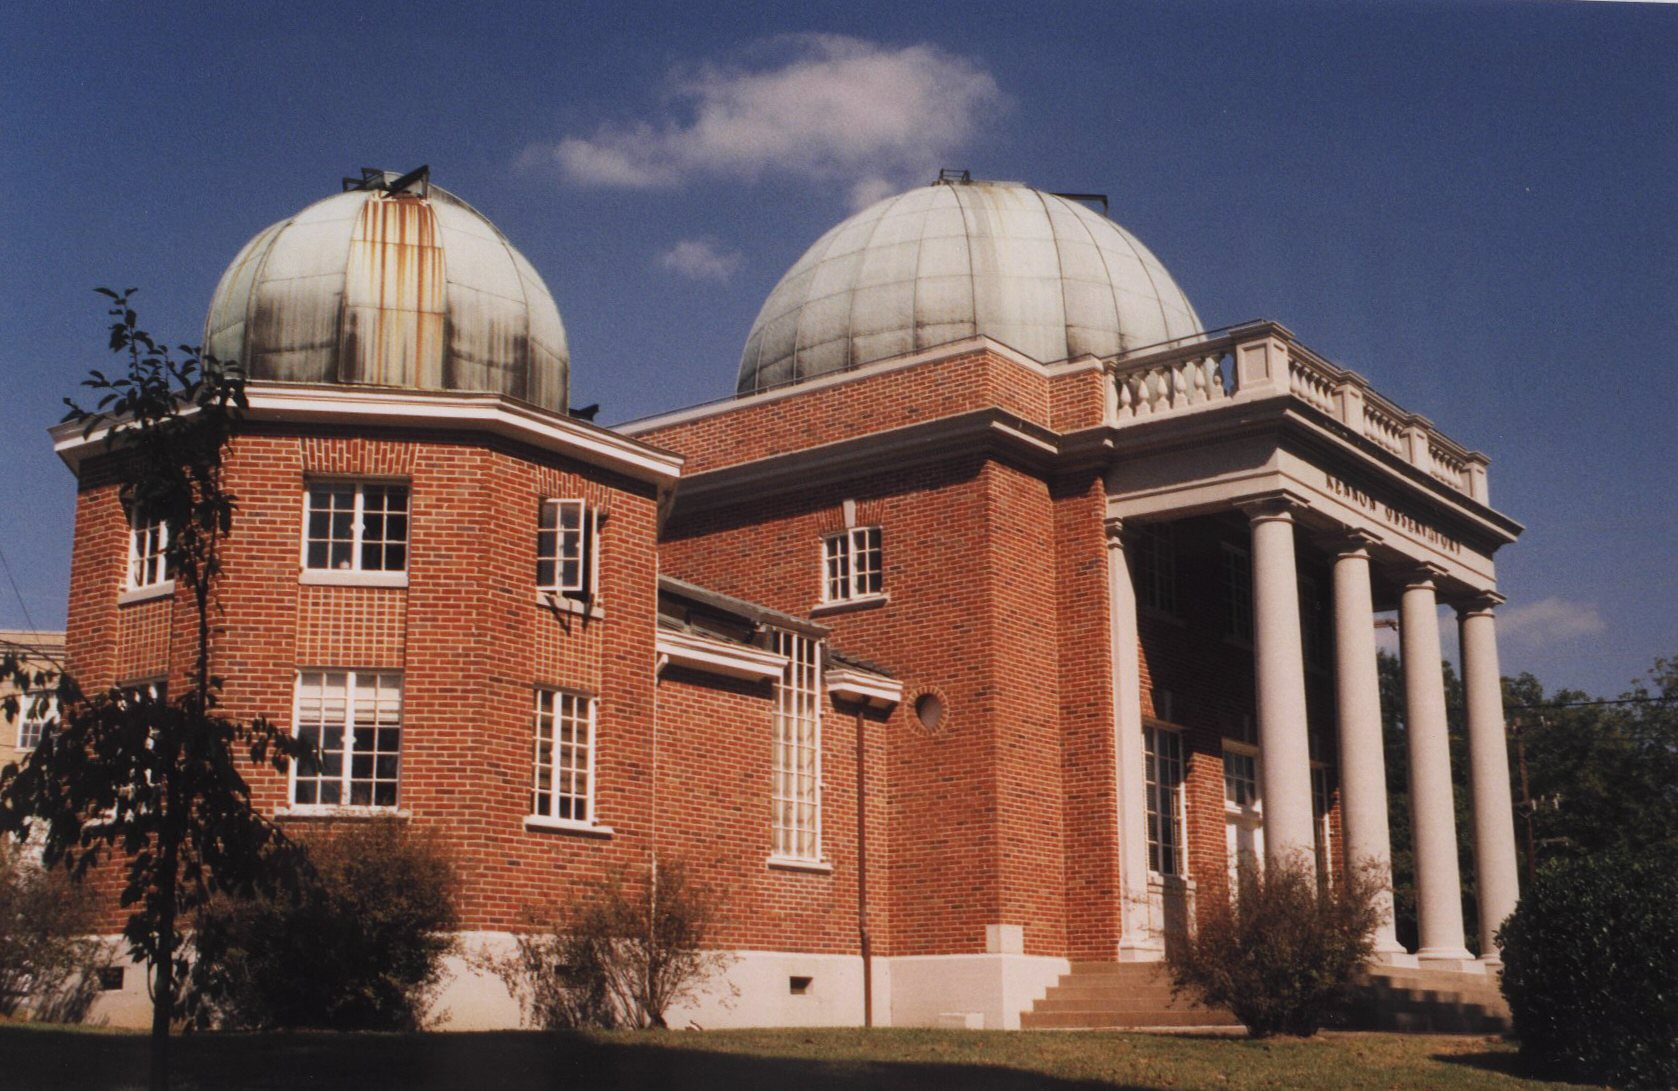 Kennon Observatory from the southwest